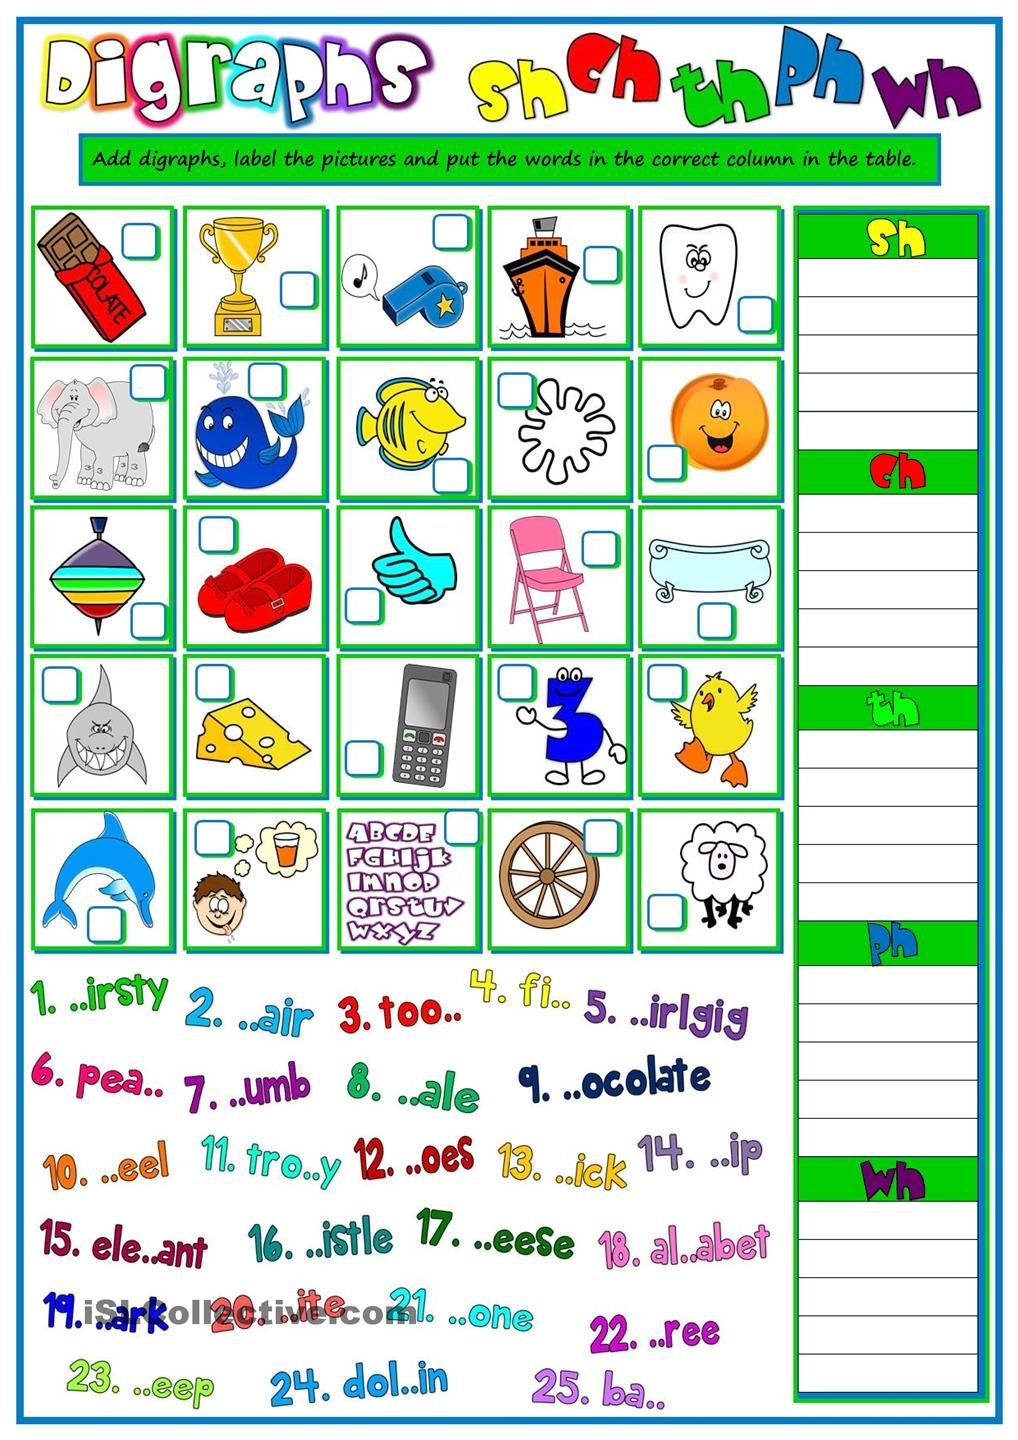 hight resolution of Digraphs - sh